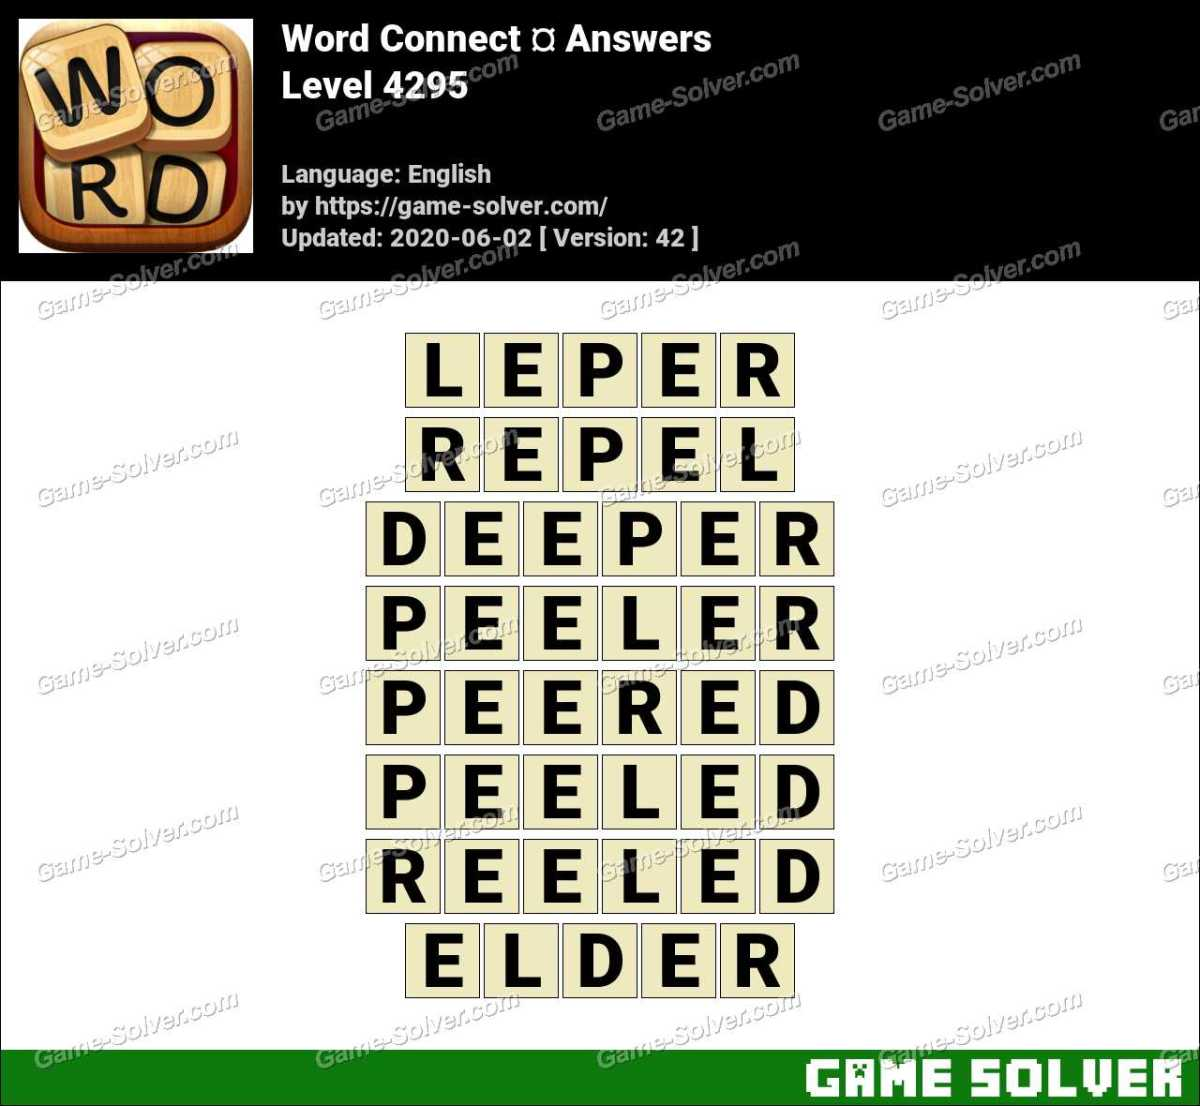 Word Connect Level 4295 Answers